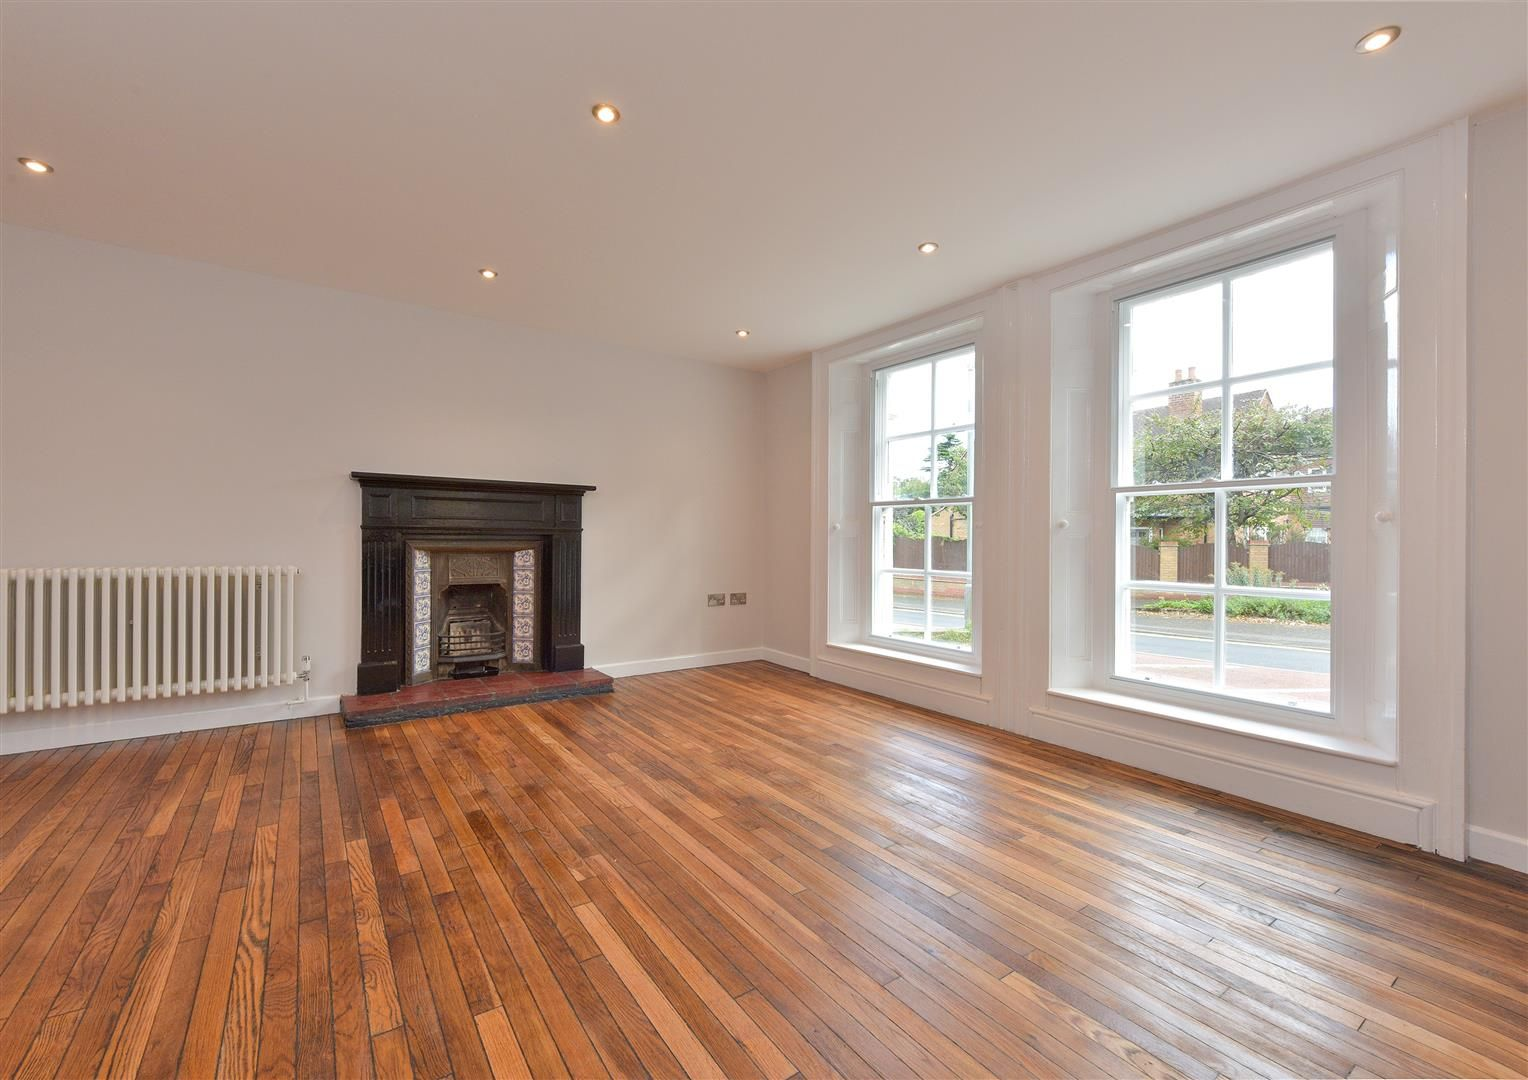 2 bed apartment for sale 5